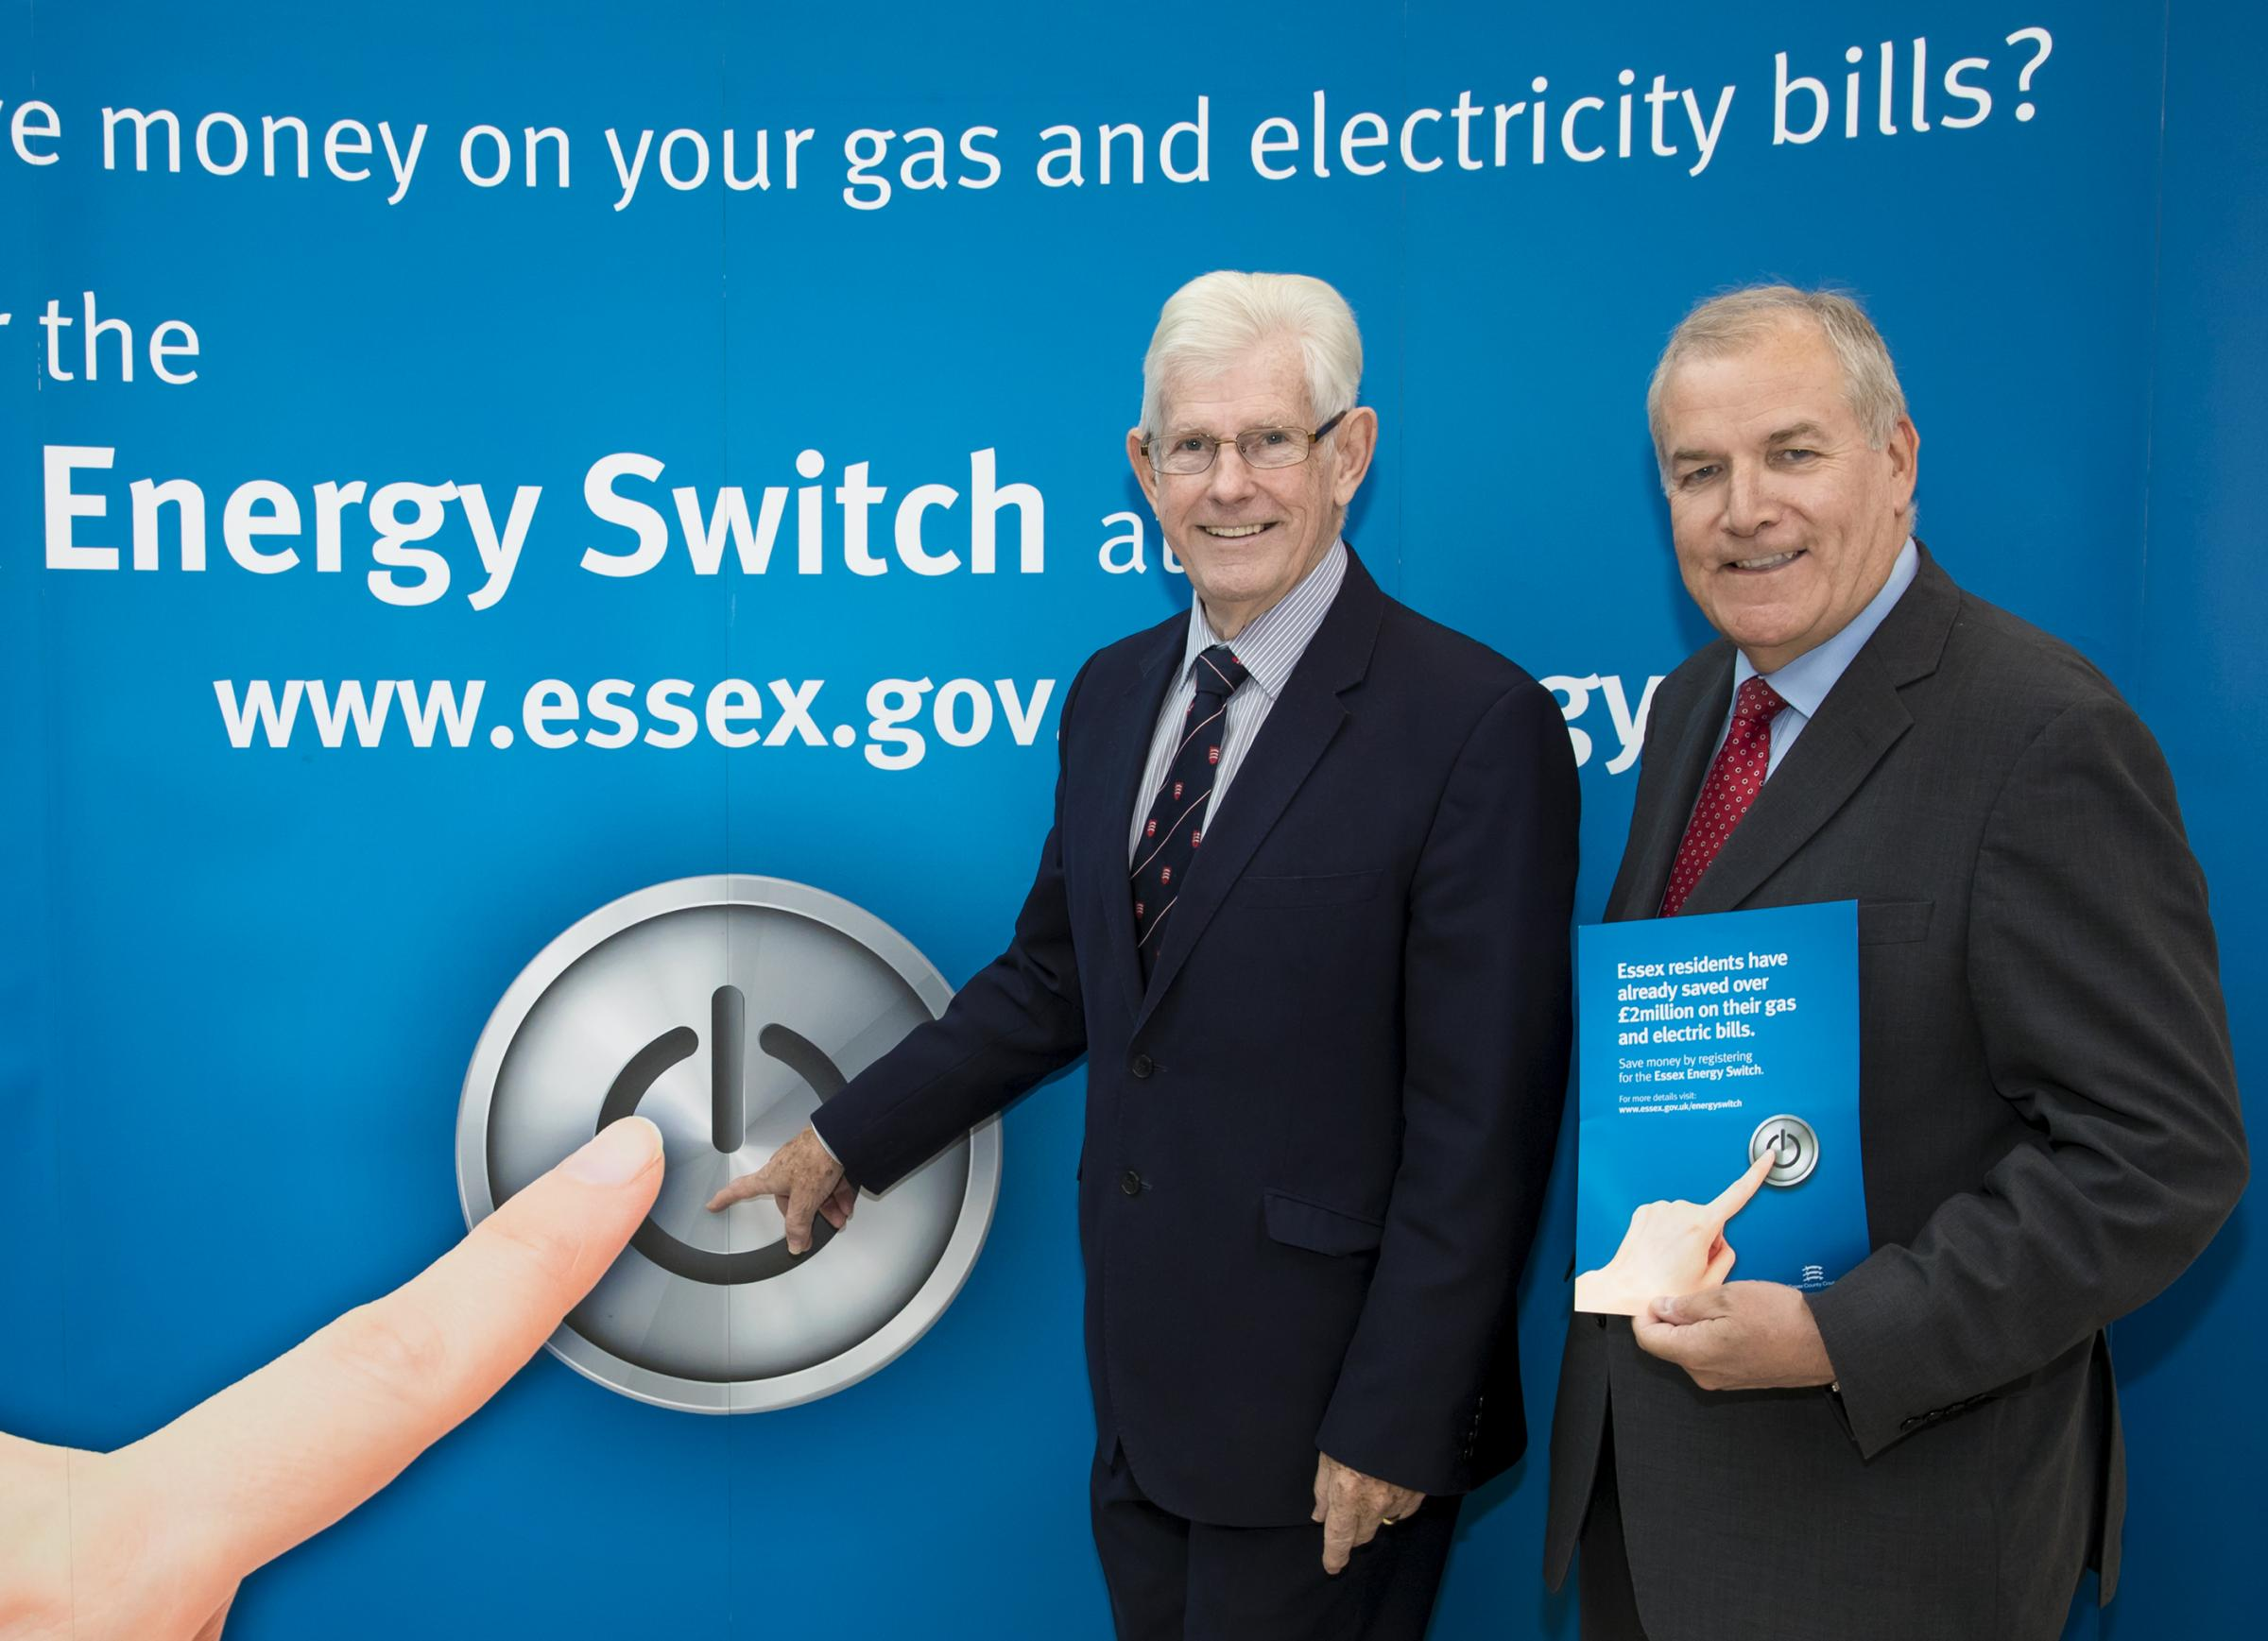 More than 8,000 sign up to save money on gas and electricity bills